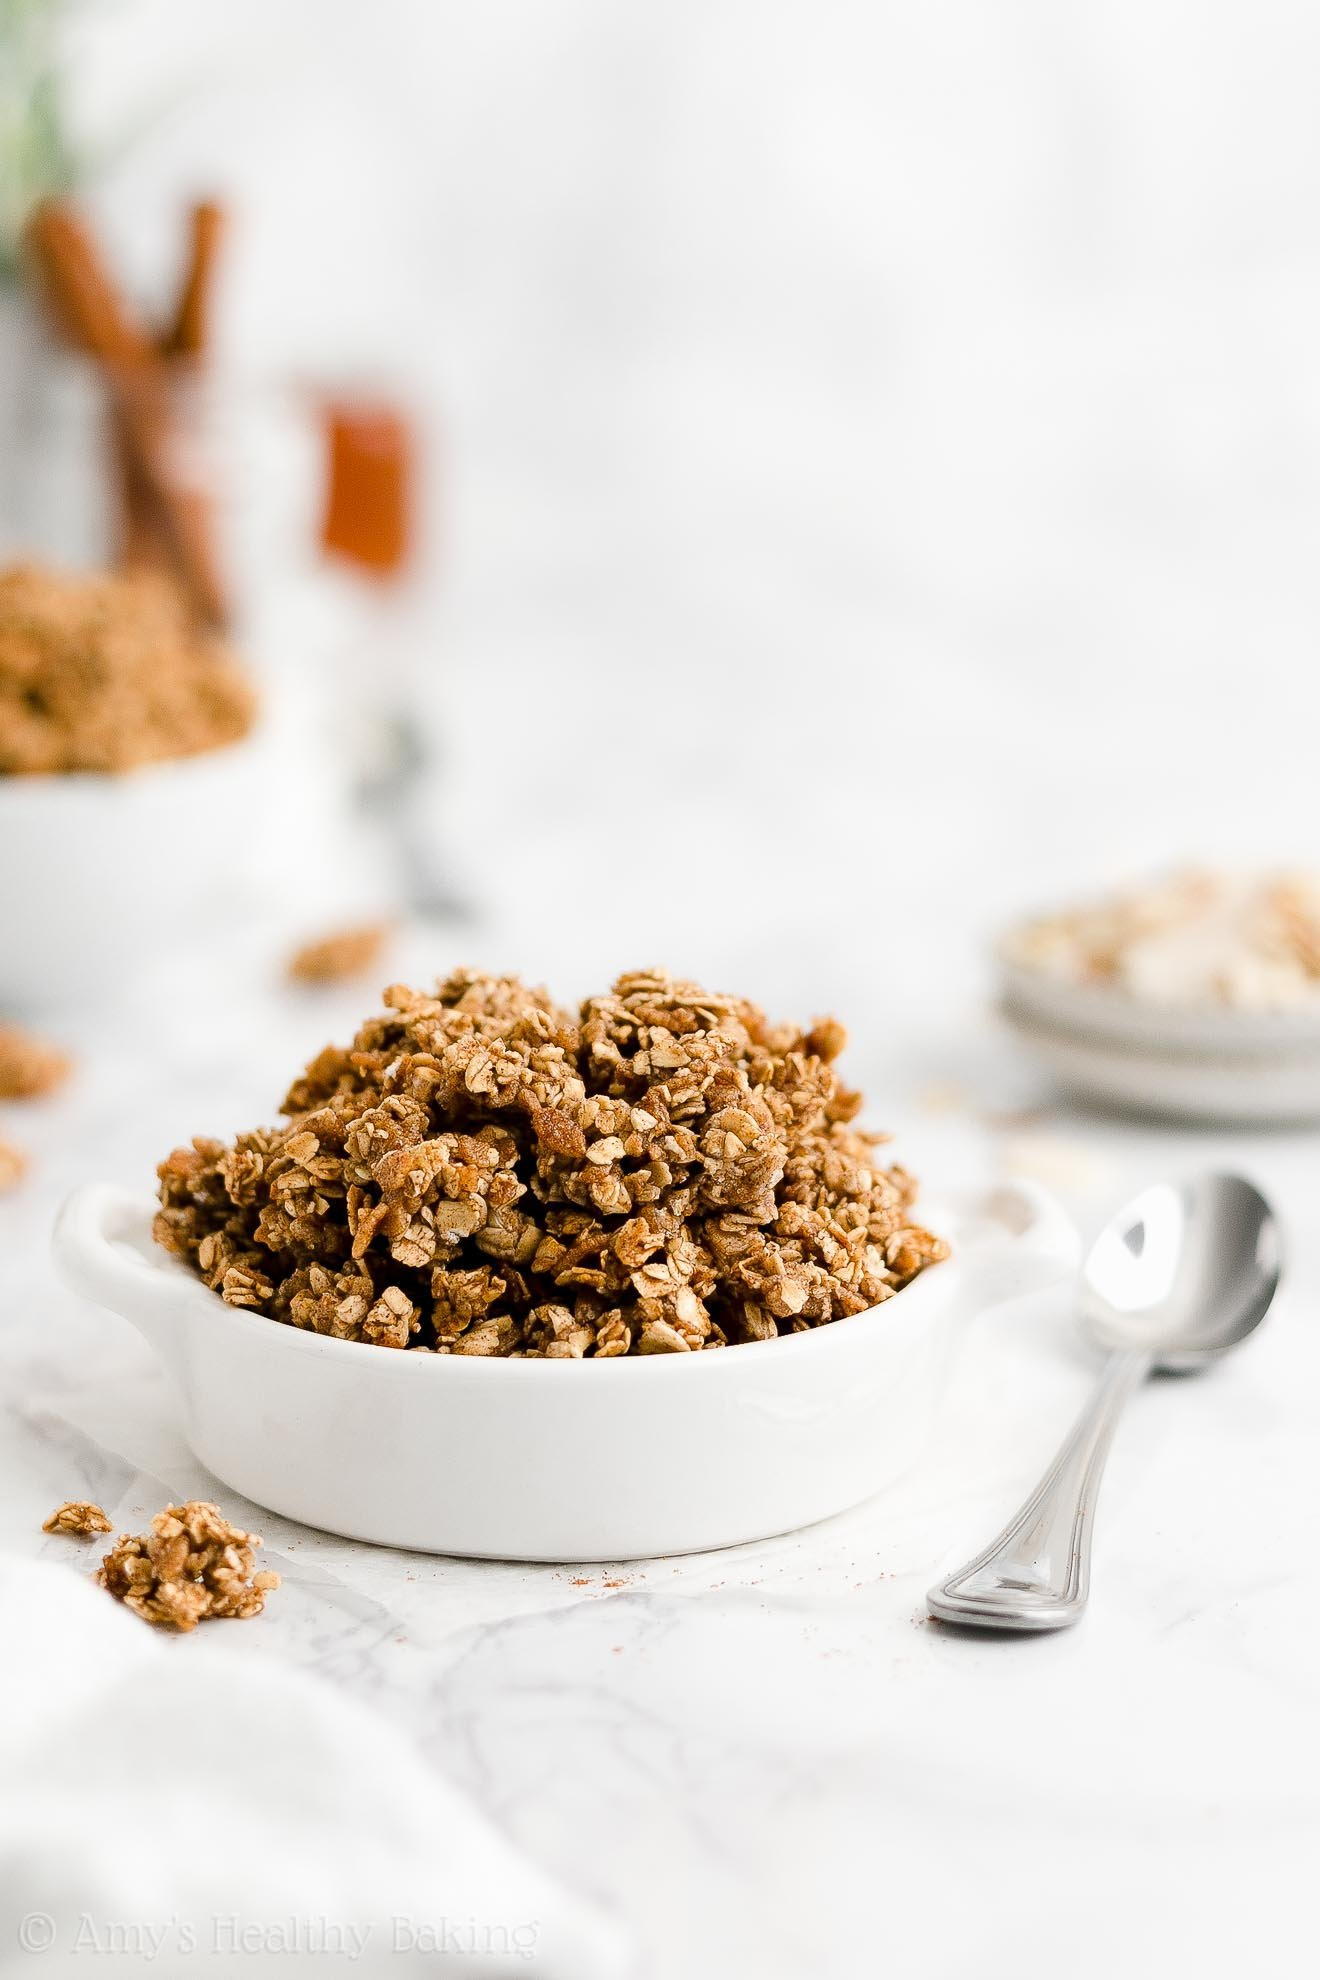 basic granola recipe with crunchy clusters & no oil that's dairy free